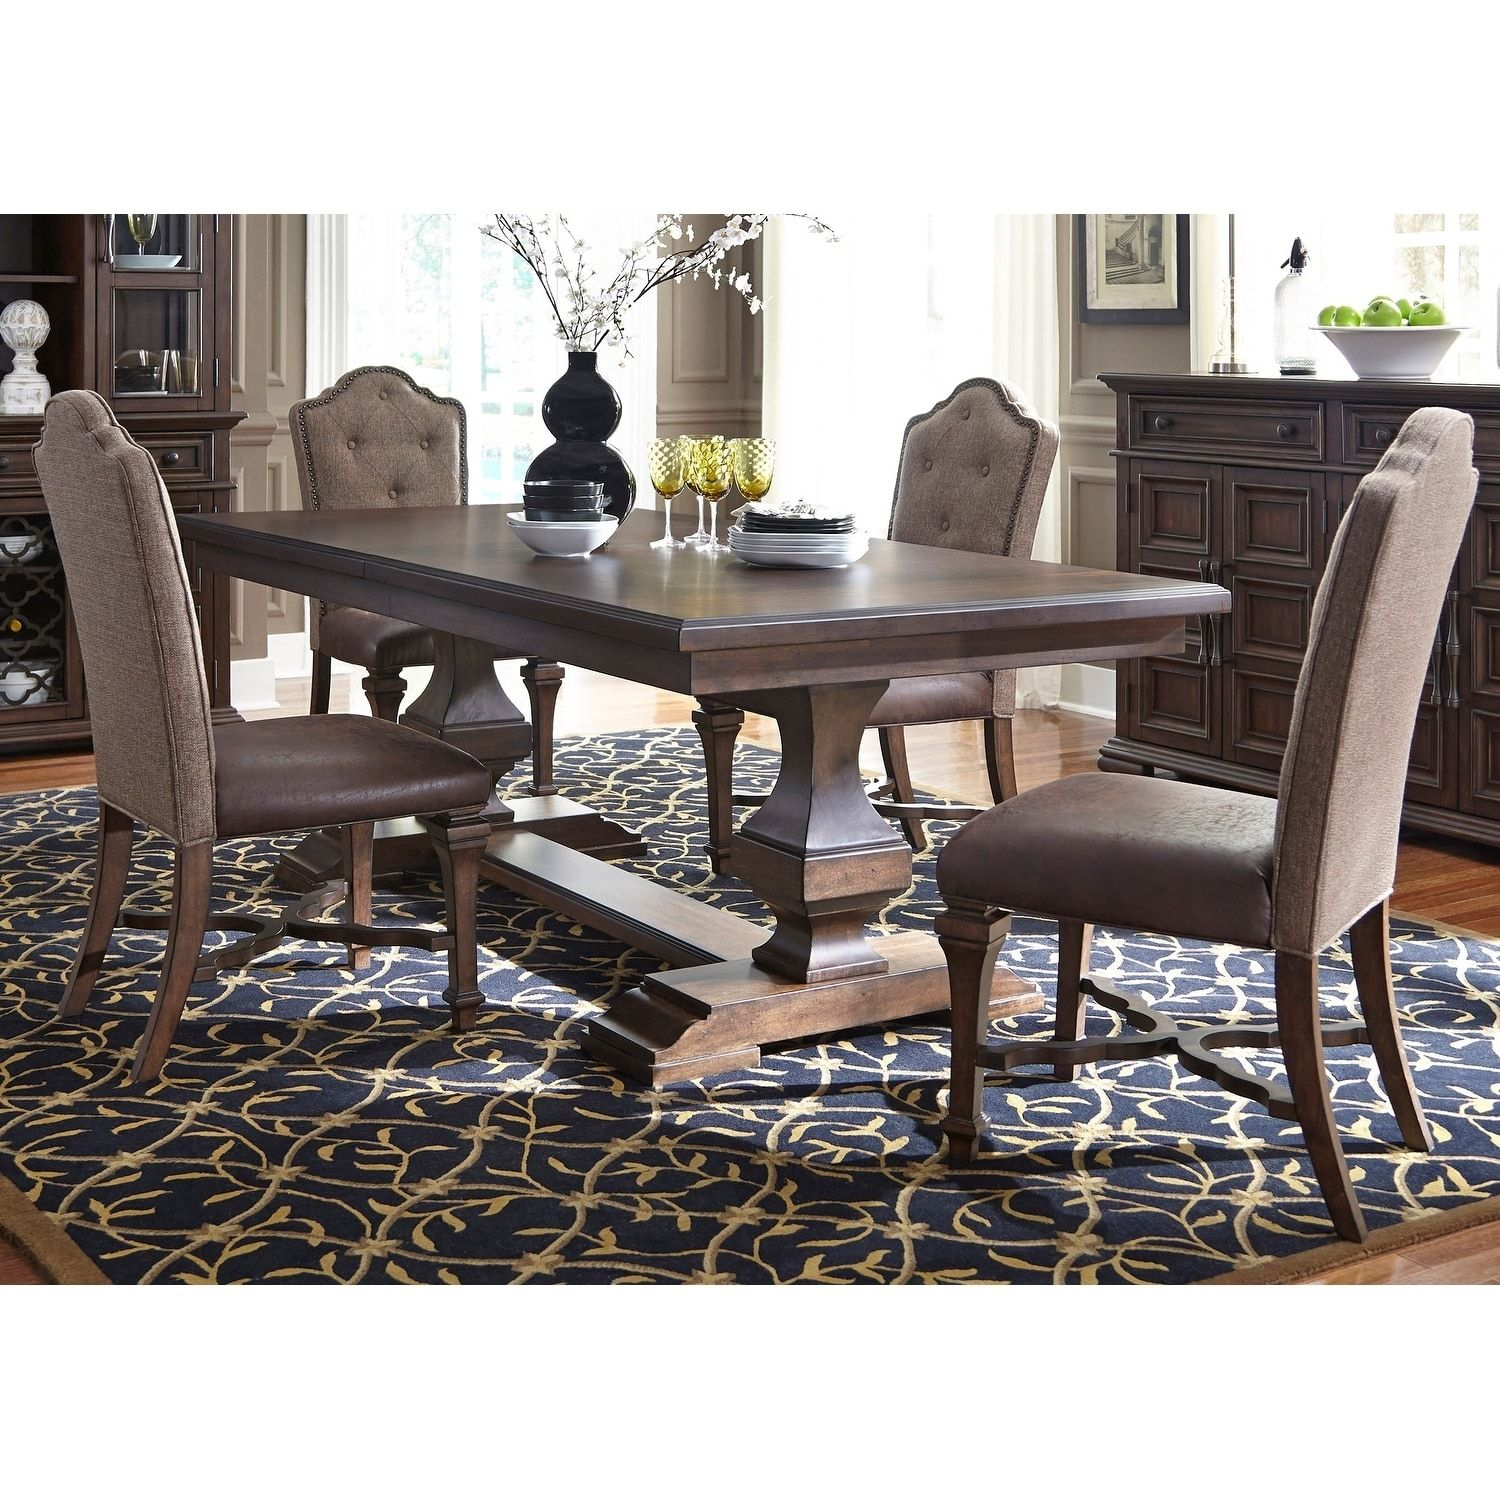 Liberty Lucca Cordovan Brown 5 Piece Double Pedestal Table Set, Size  5 Piece Sets